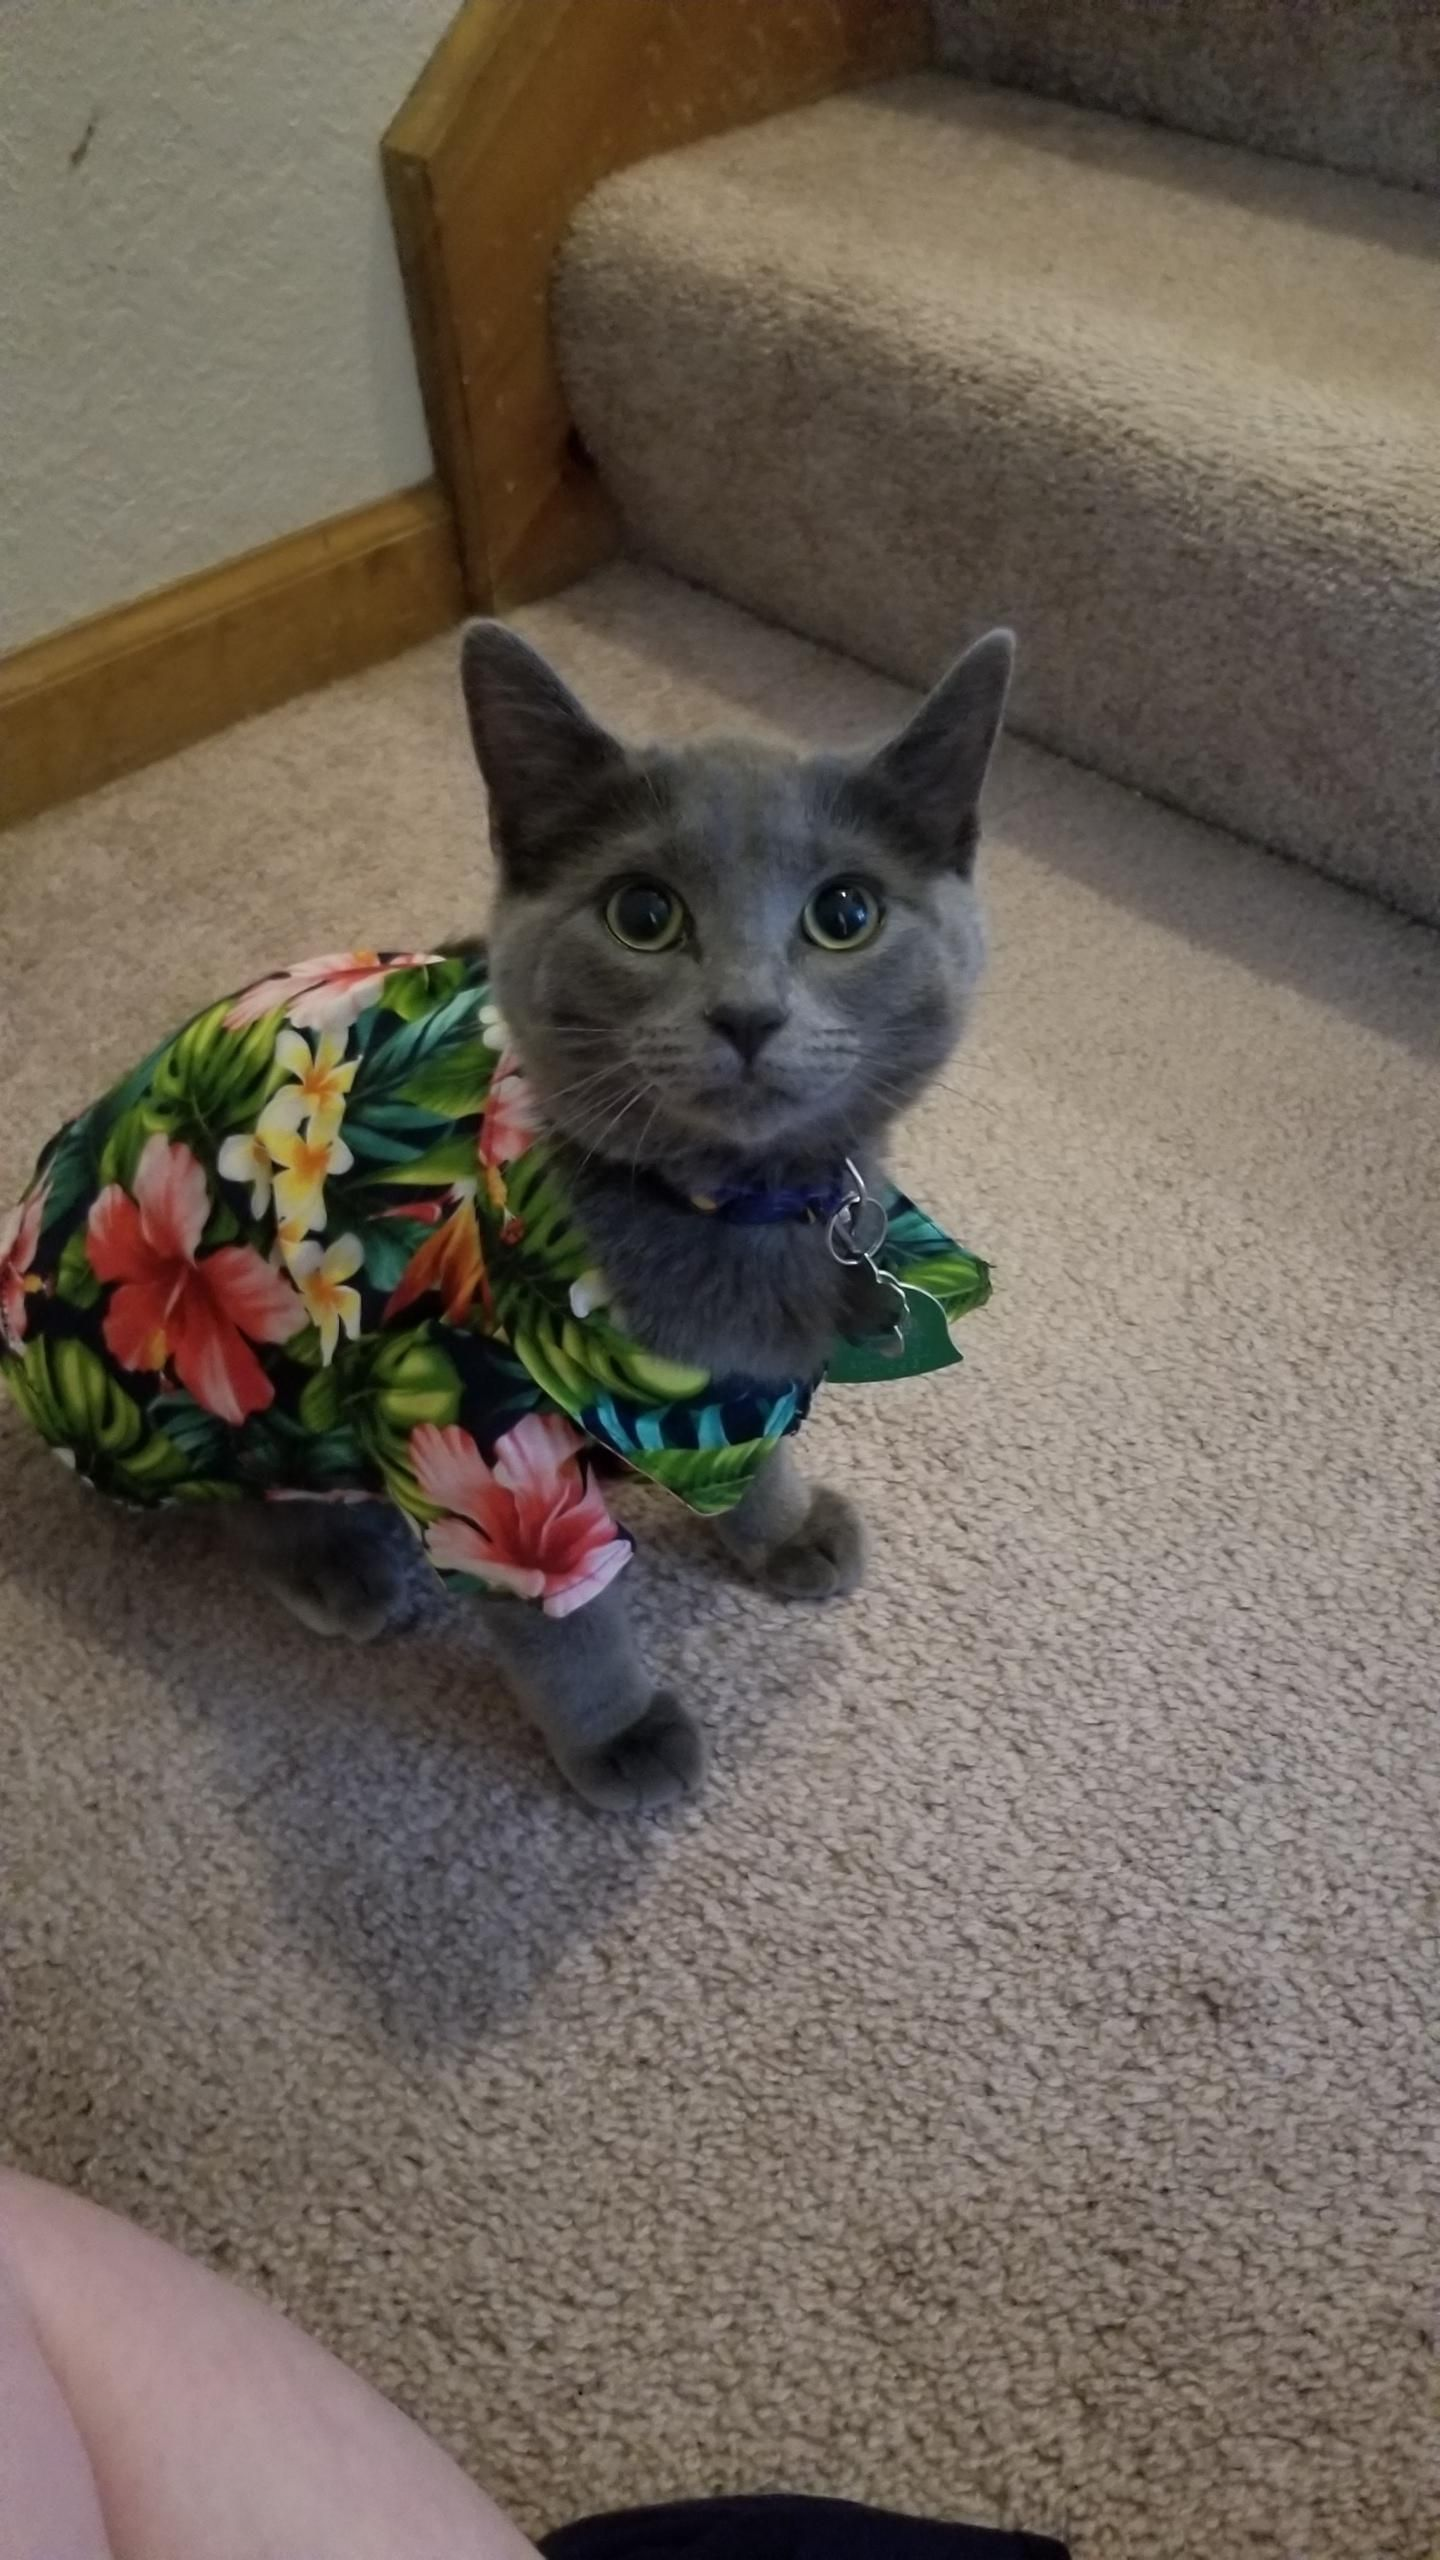 I Made My Kitten A Hawaiian Shirt More Outfits To Come Cat Post Funny Animal Photos Animal Photo